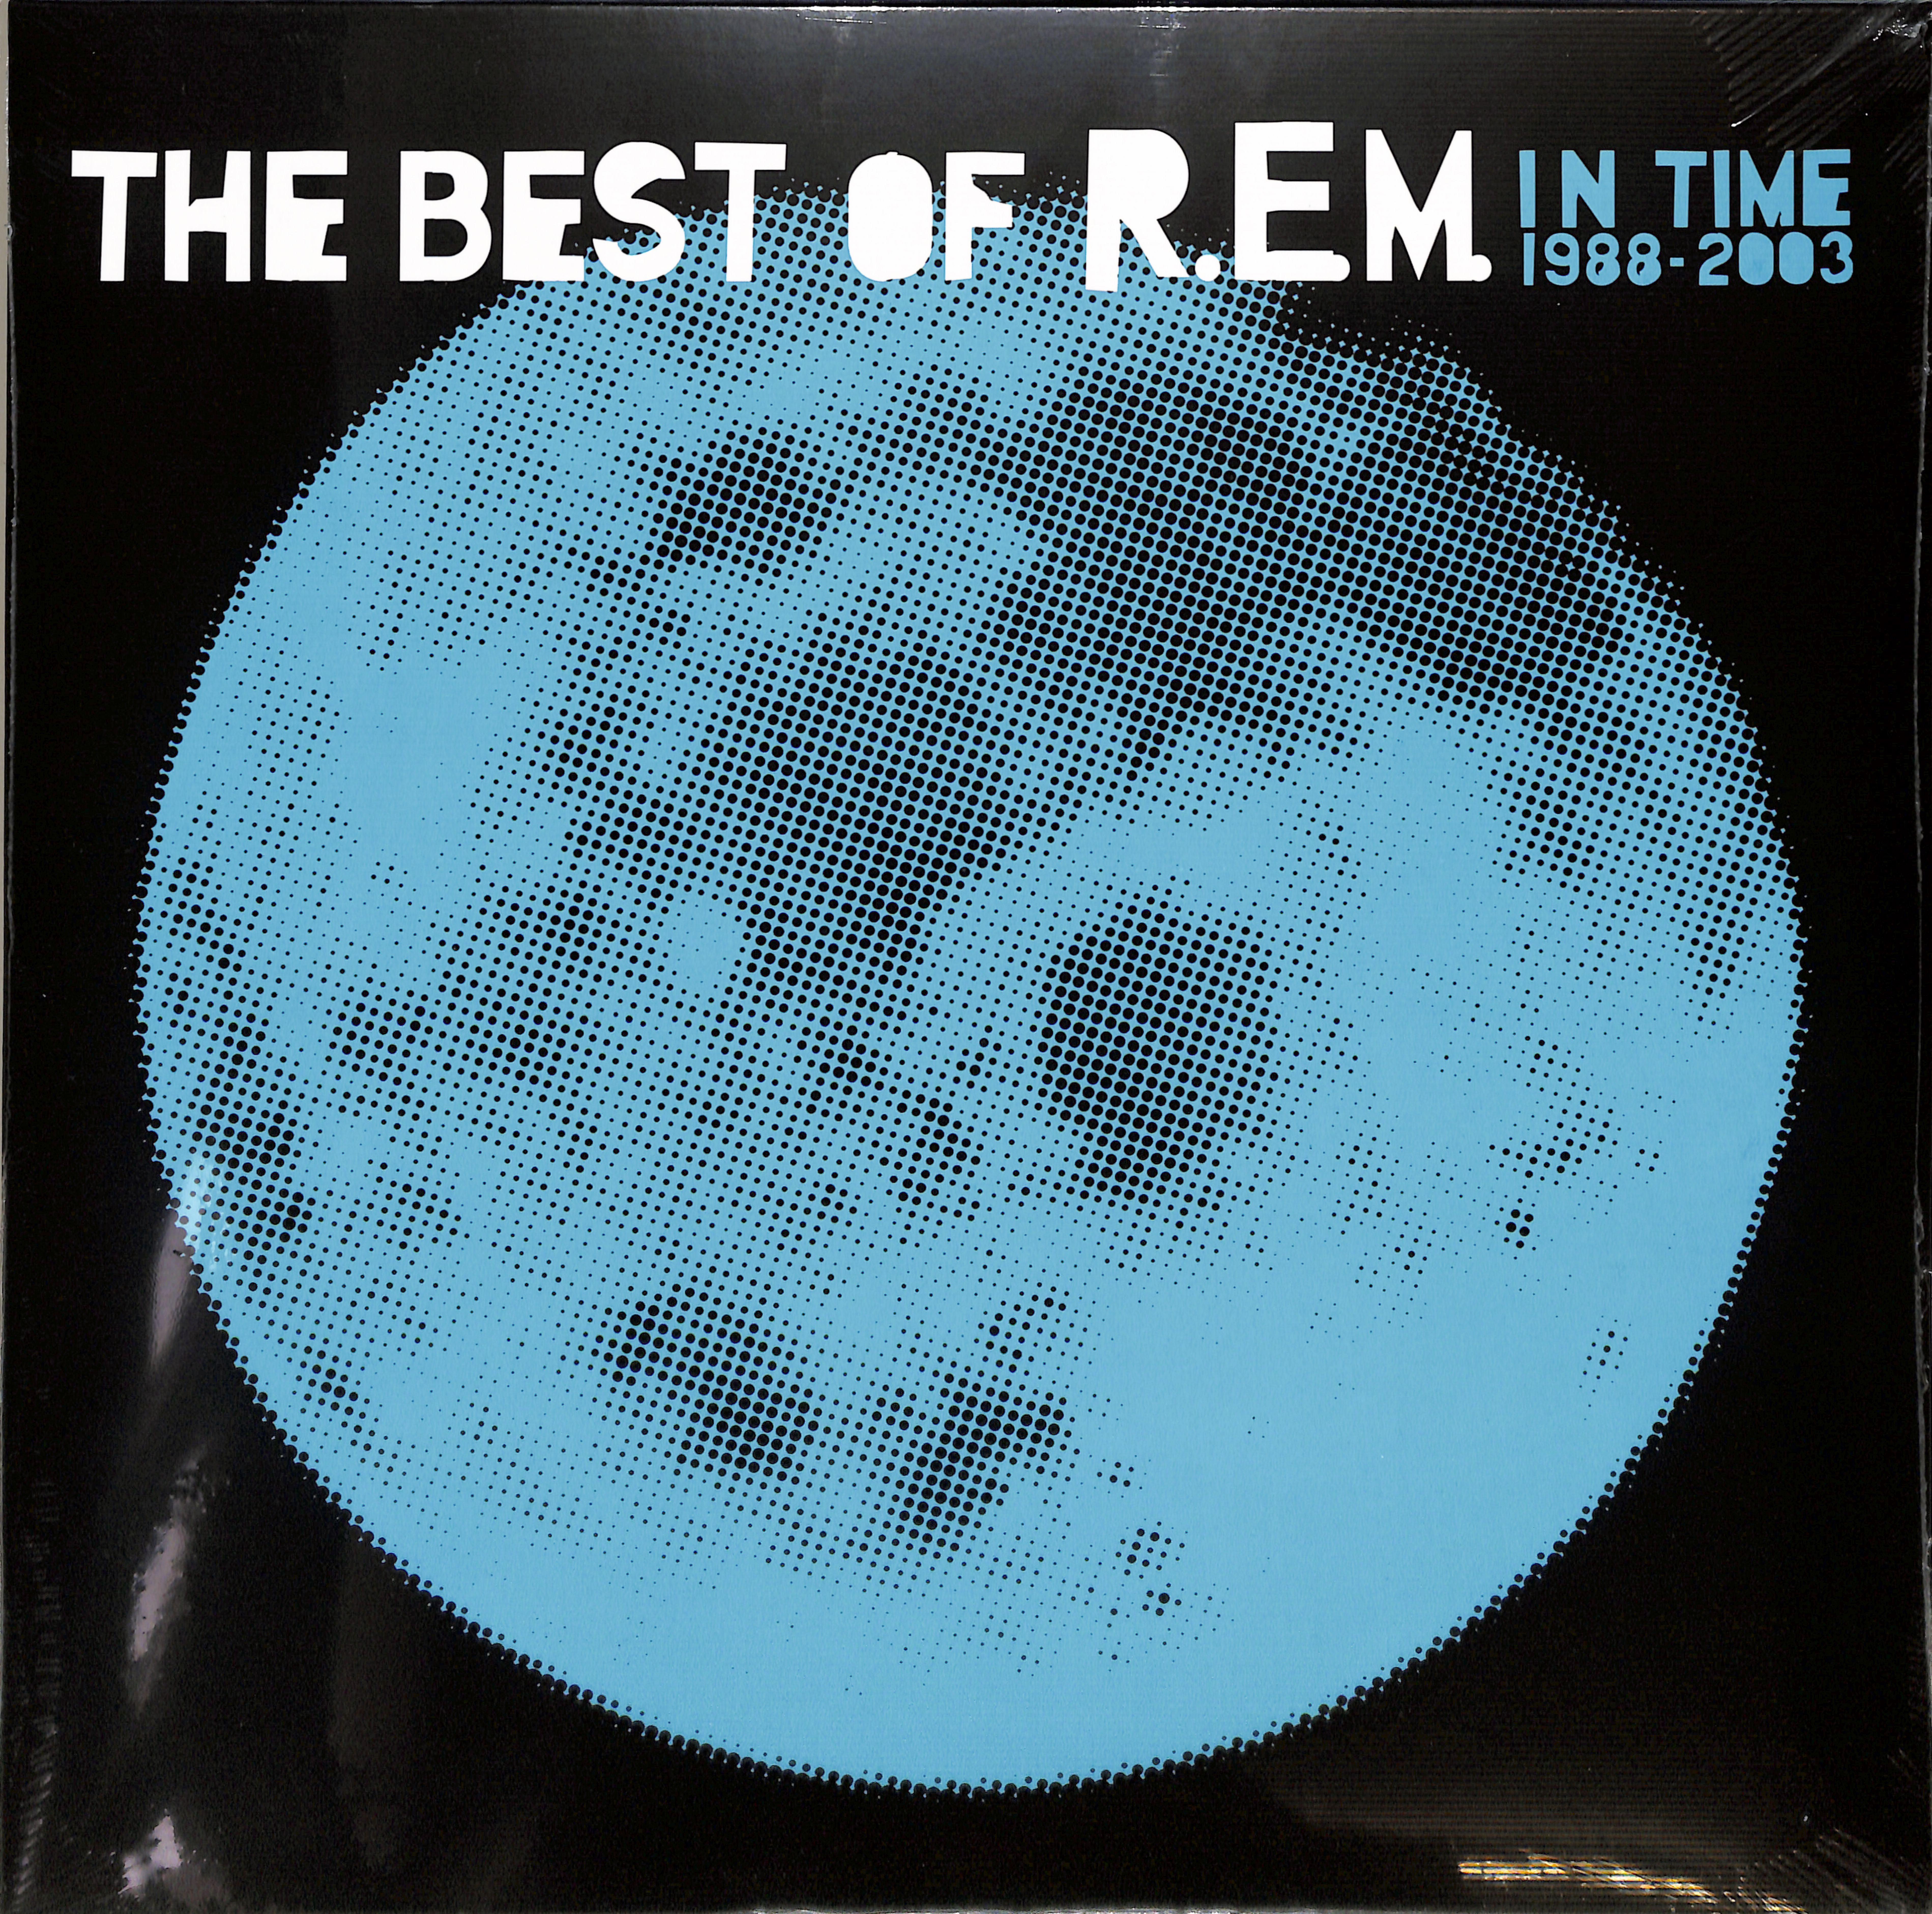 R.E.M. - IN TIME: THE BEST OF R.E.M. 1988-2003